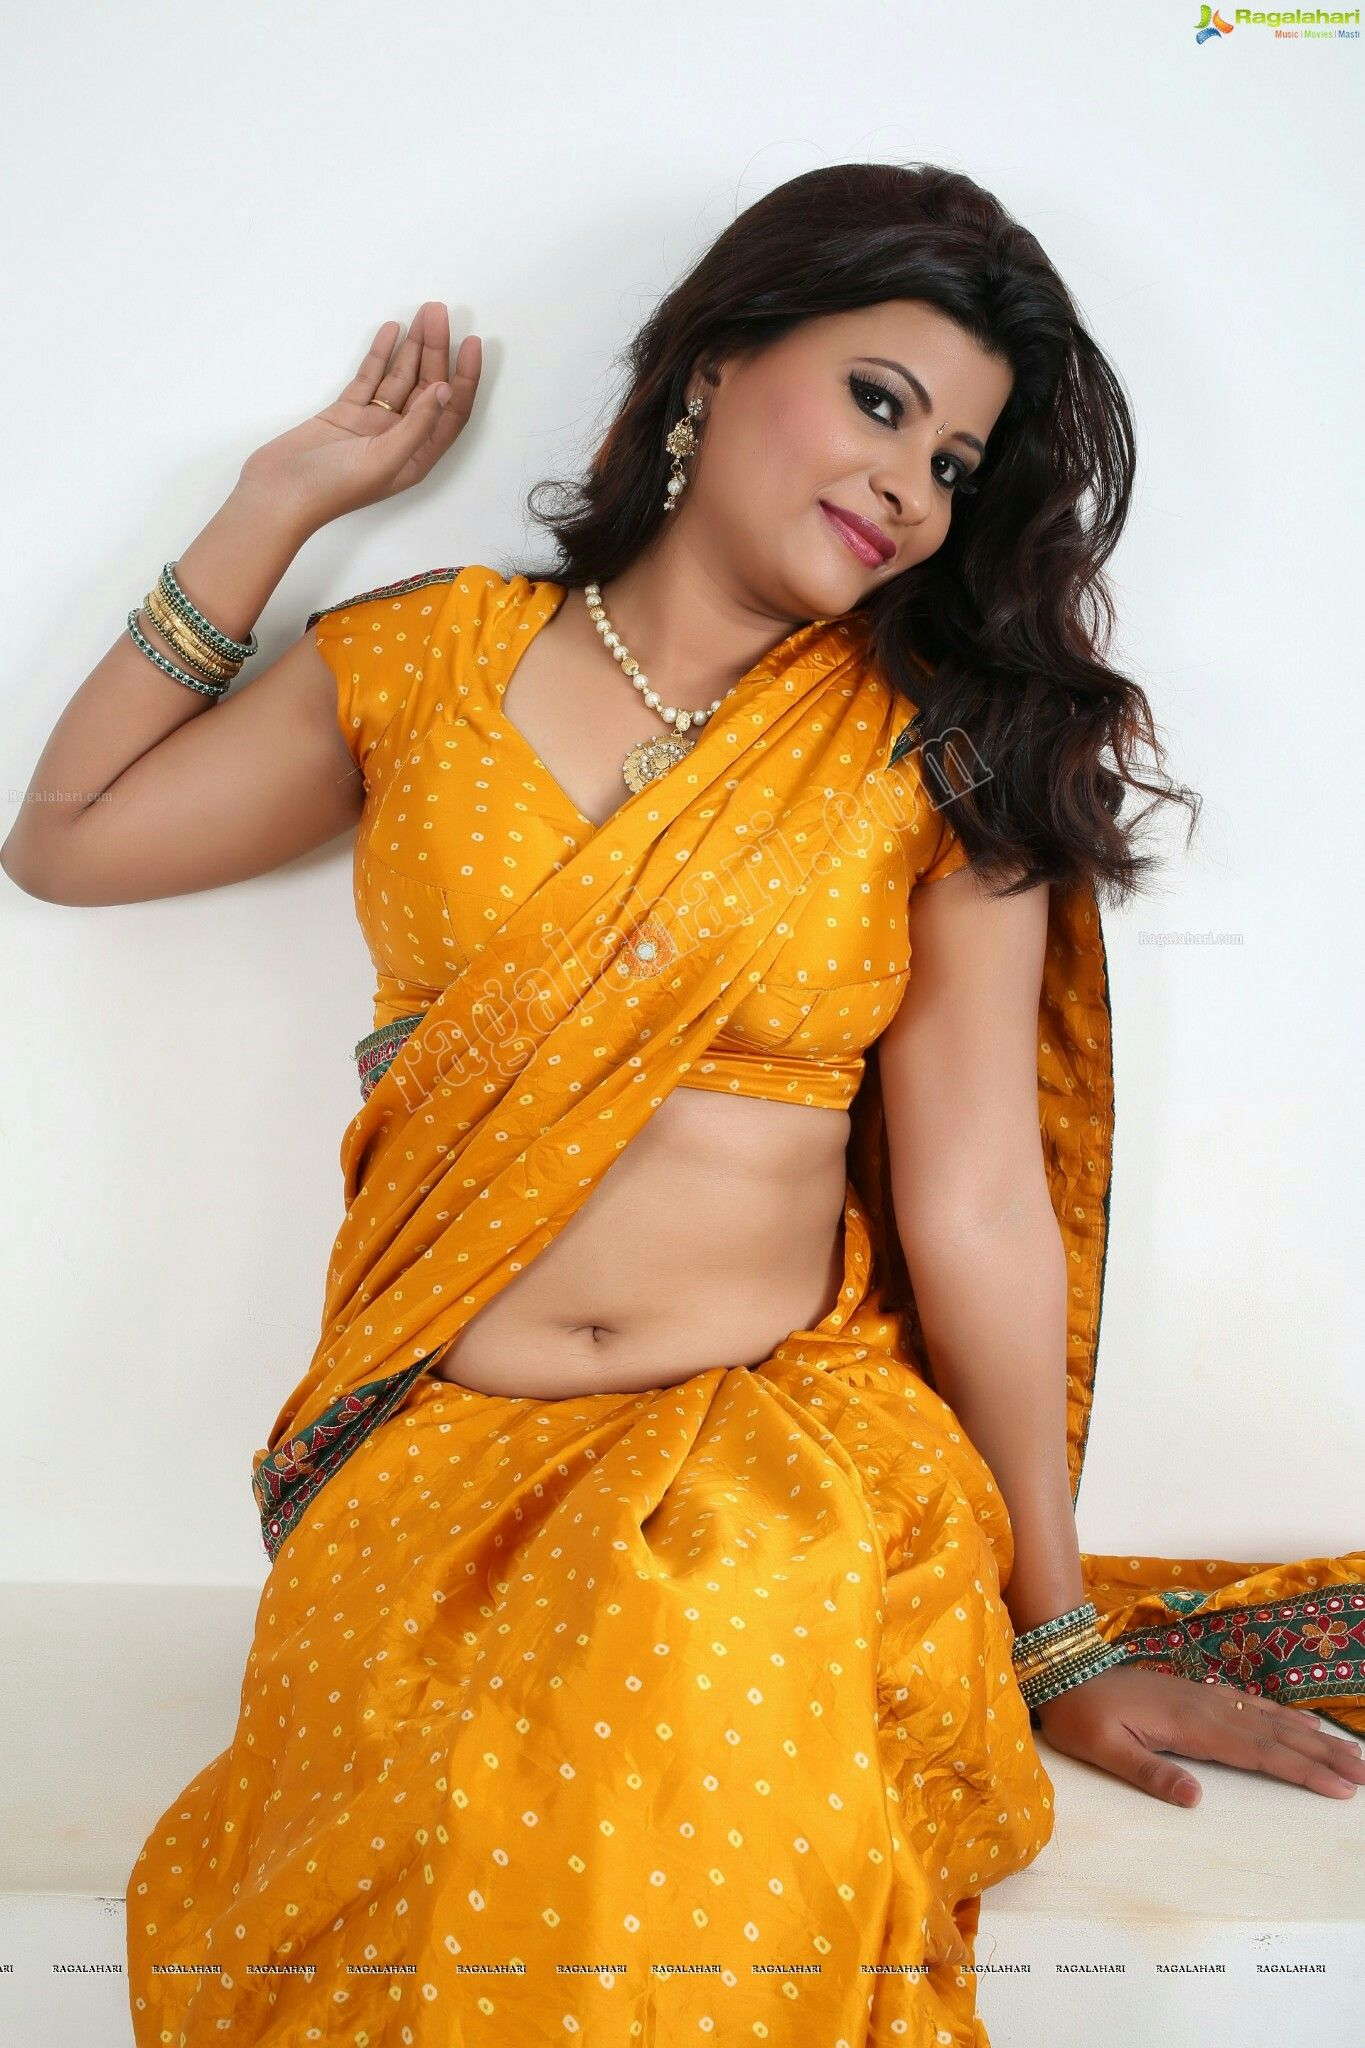 Pin by Manju Nath on Indian Gilma Beauties 1 (With images